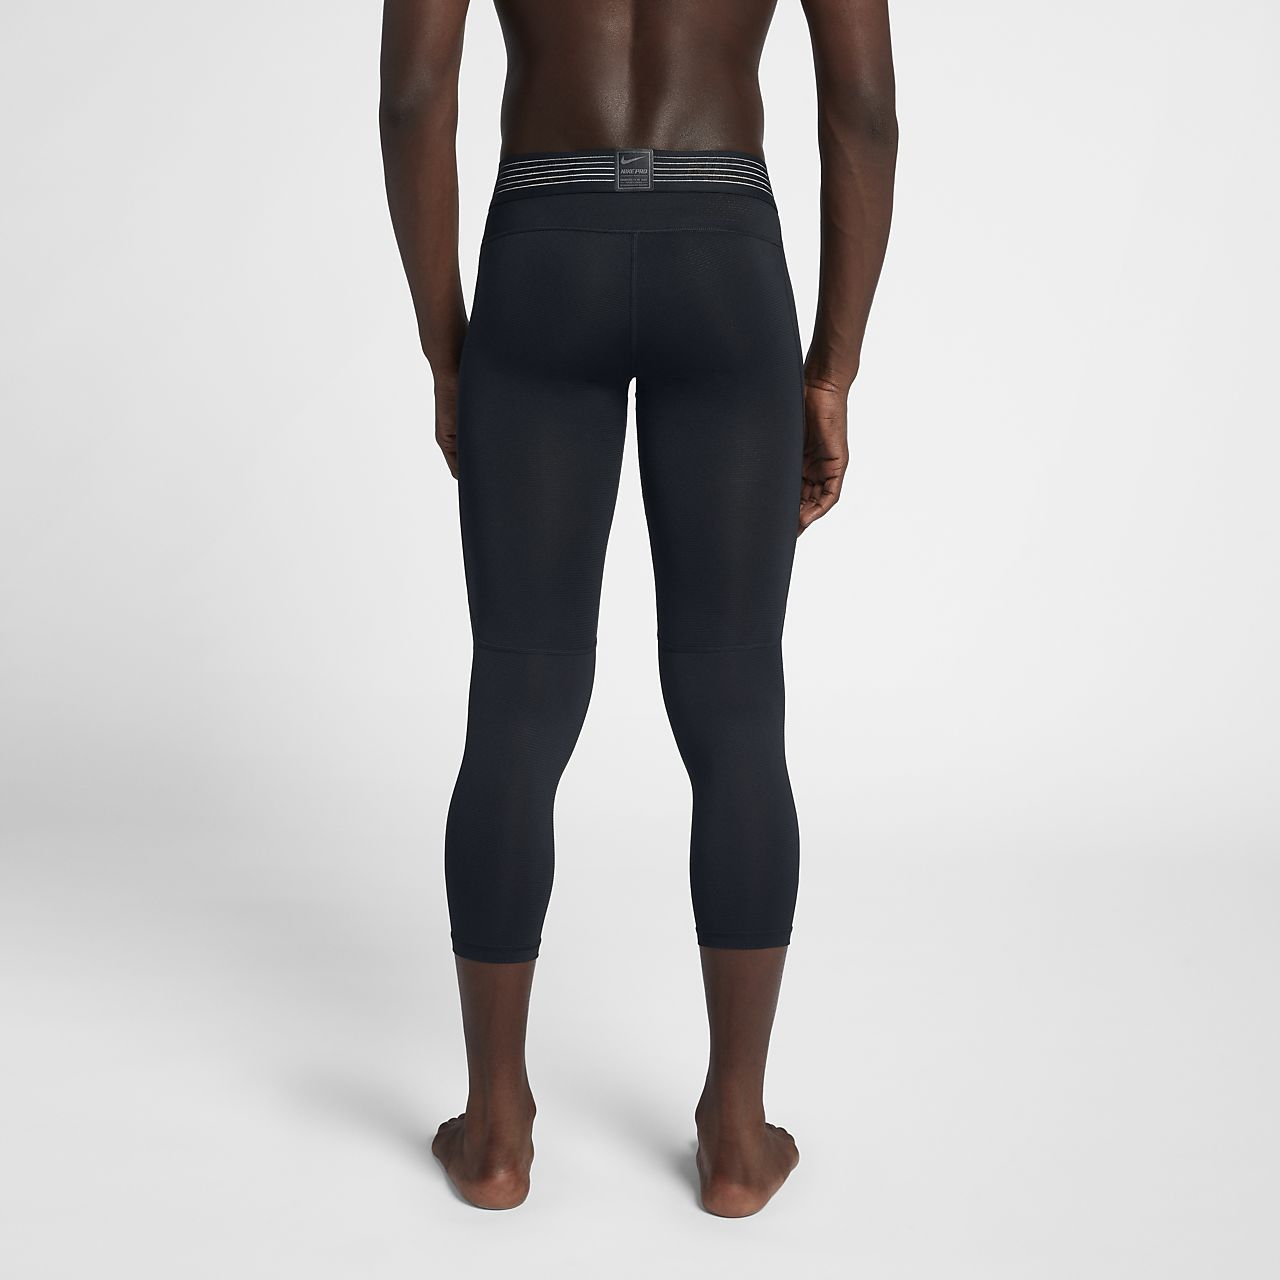 ... Nike Pro HyperCool Men's 3/4 Training Tights